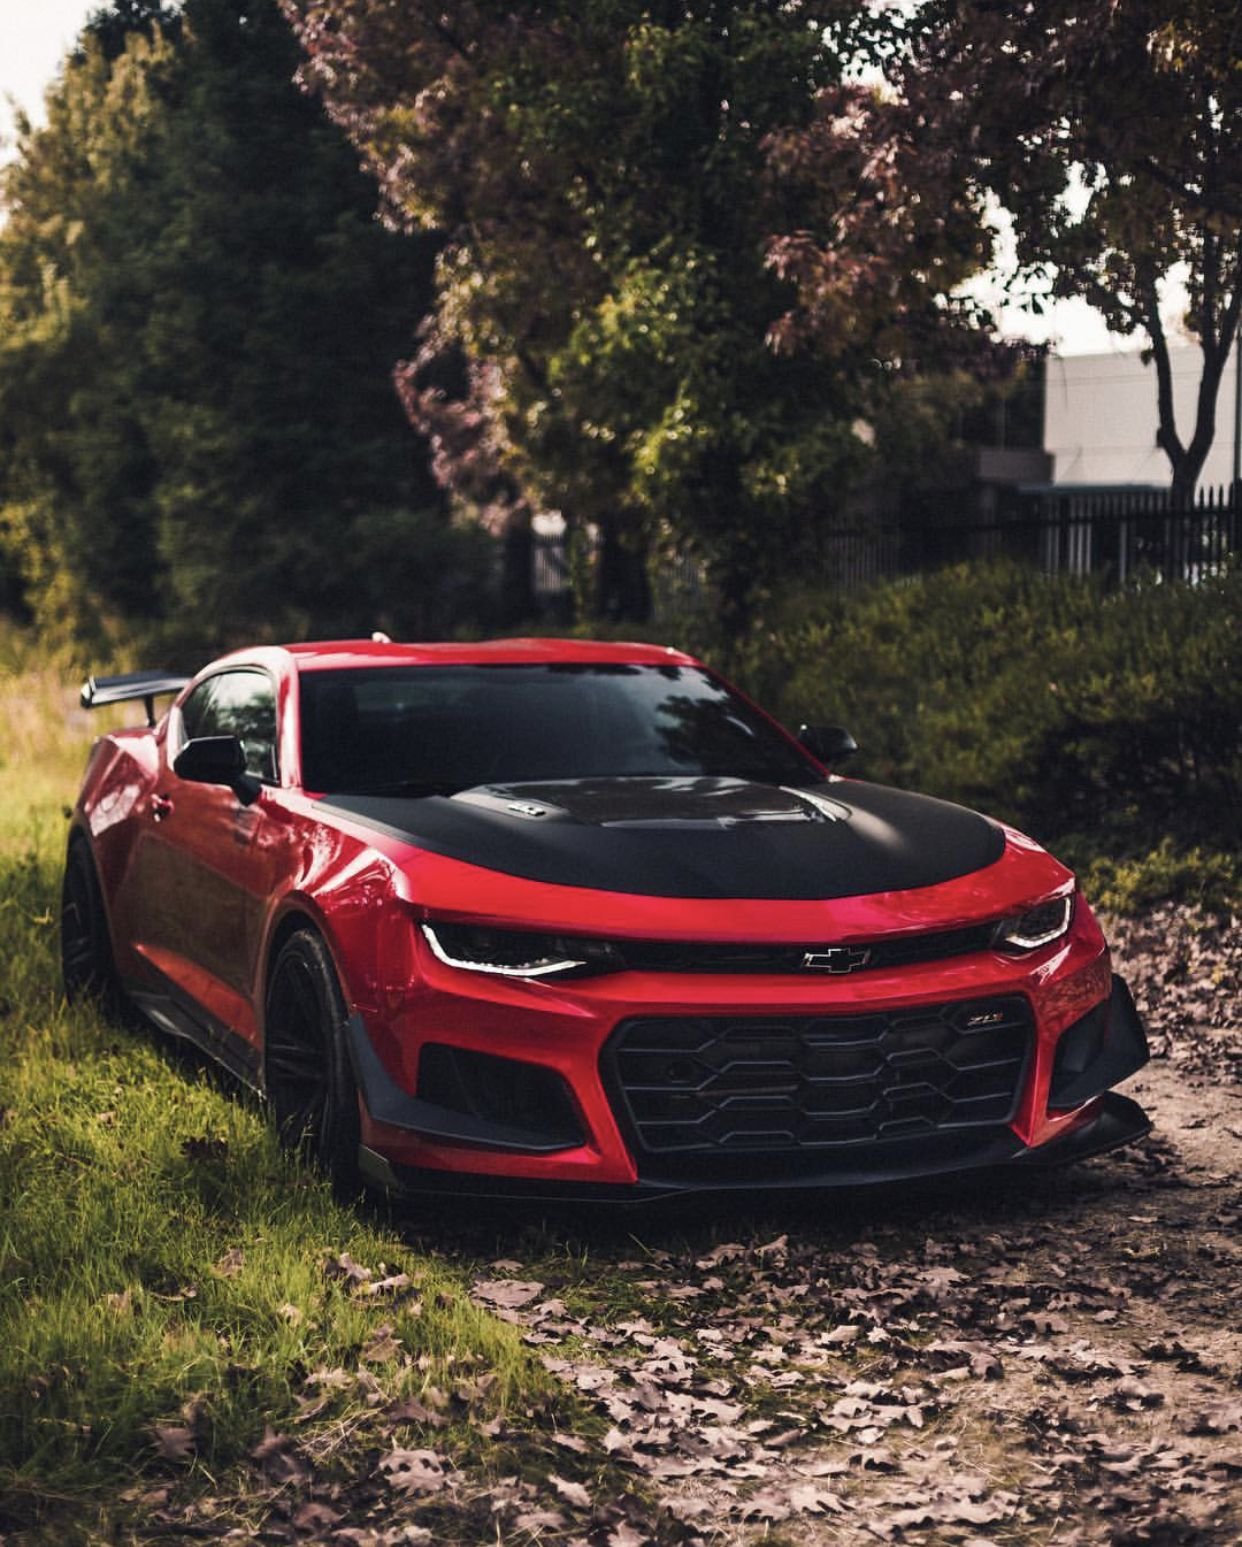 chevrolet camaro zl1 1le painted in red hot photo taken by summit rh pinterest com